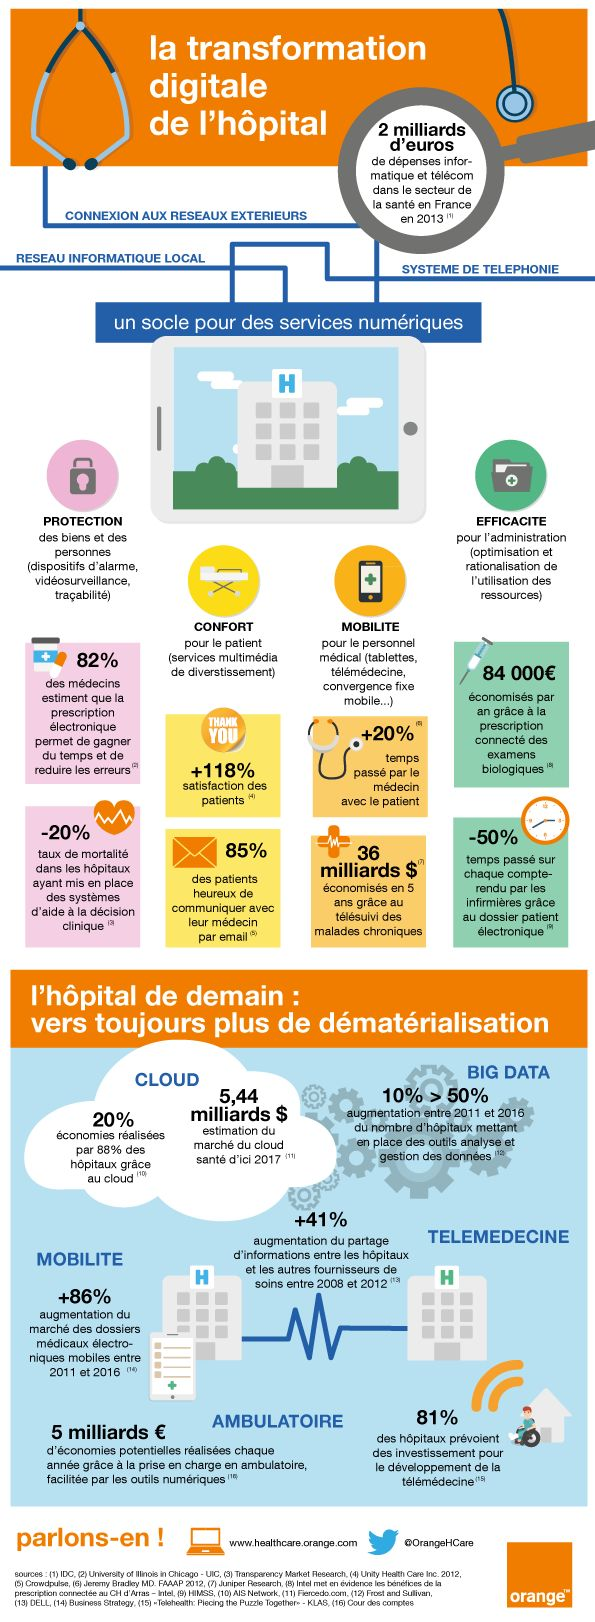 [infographie] la transformation digitale de l'hôpital | Orange Business Services